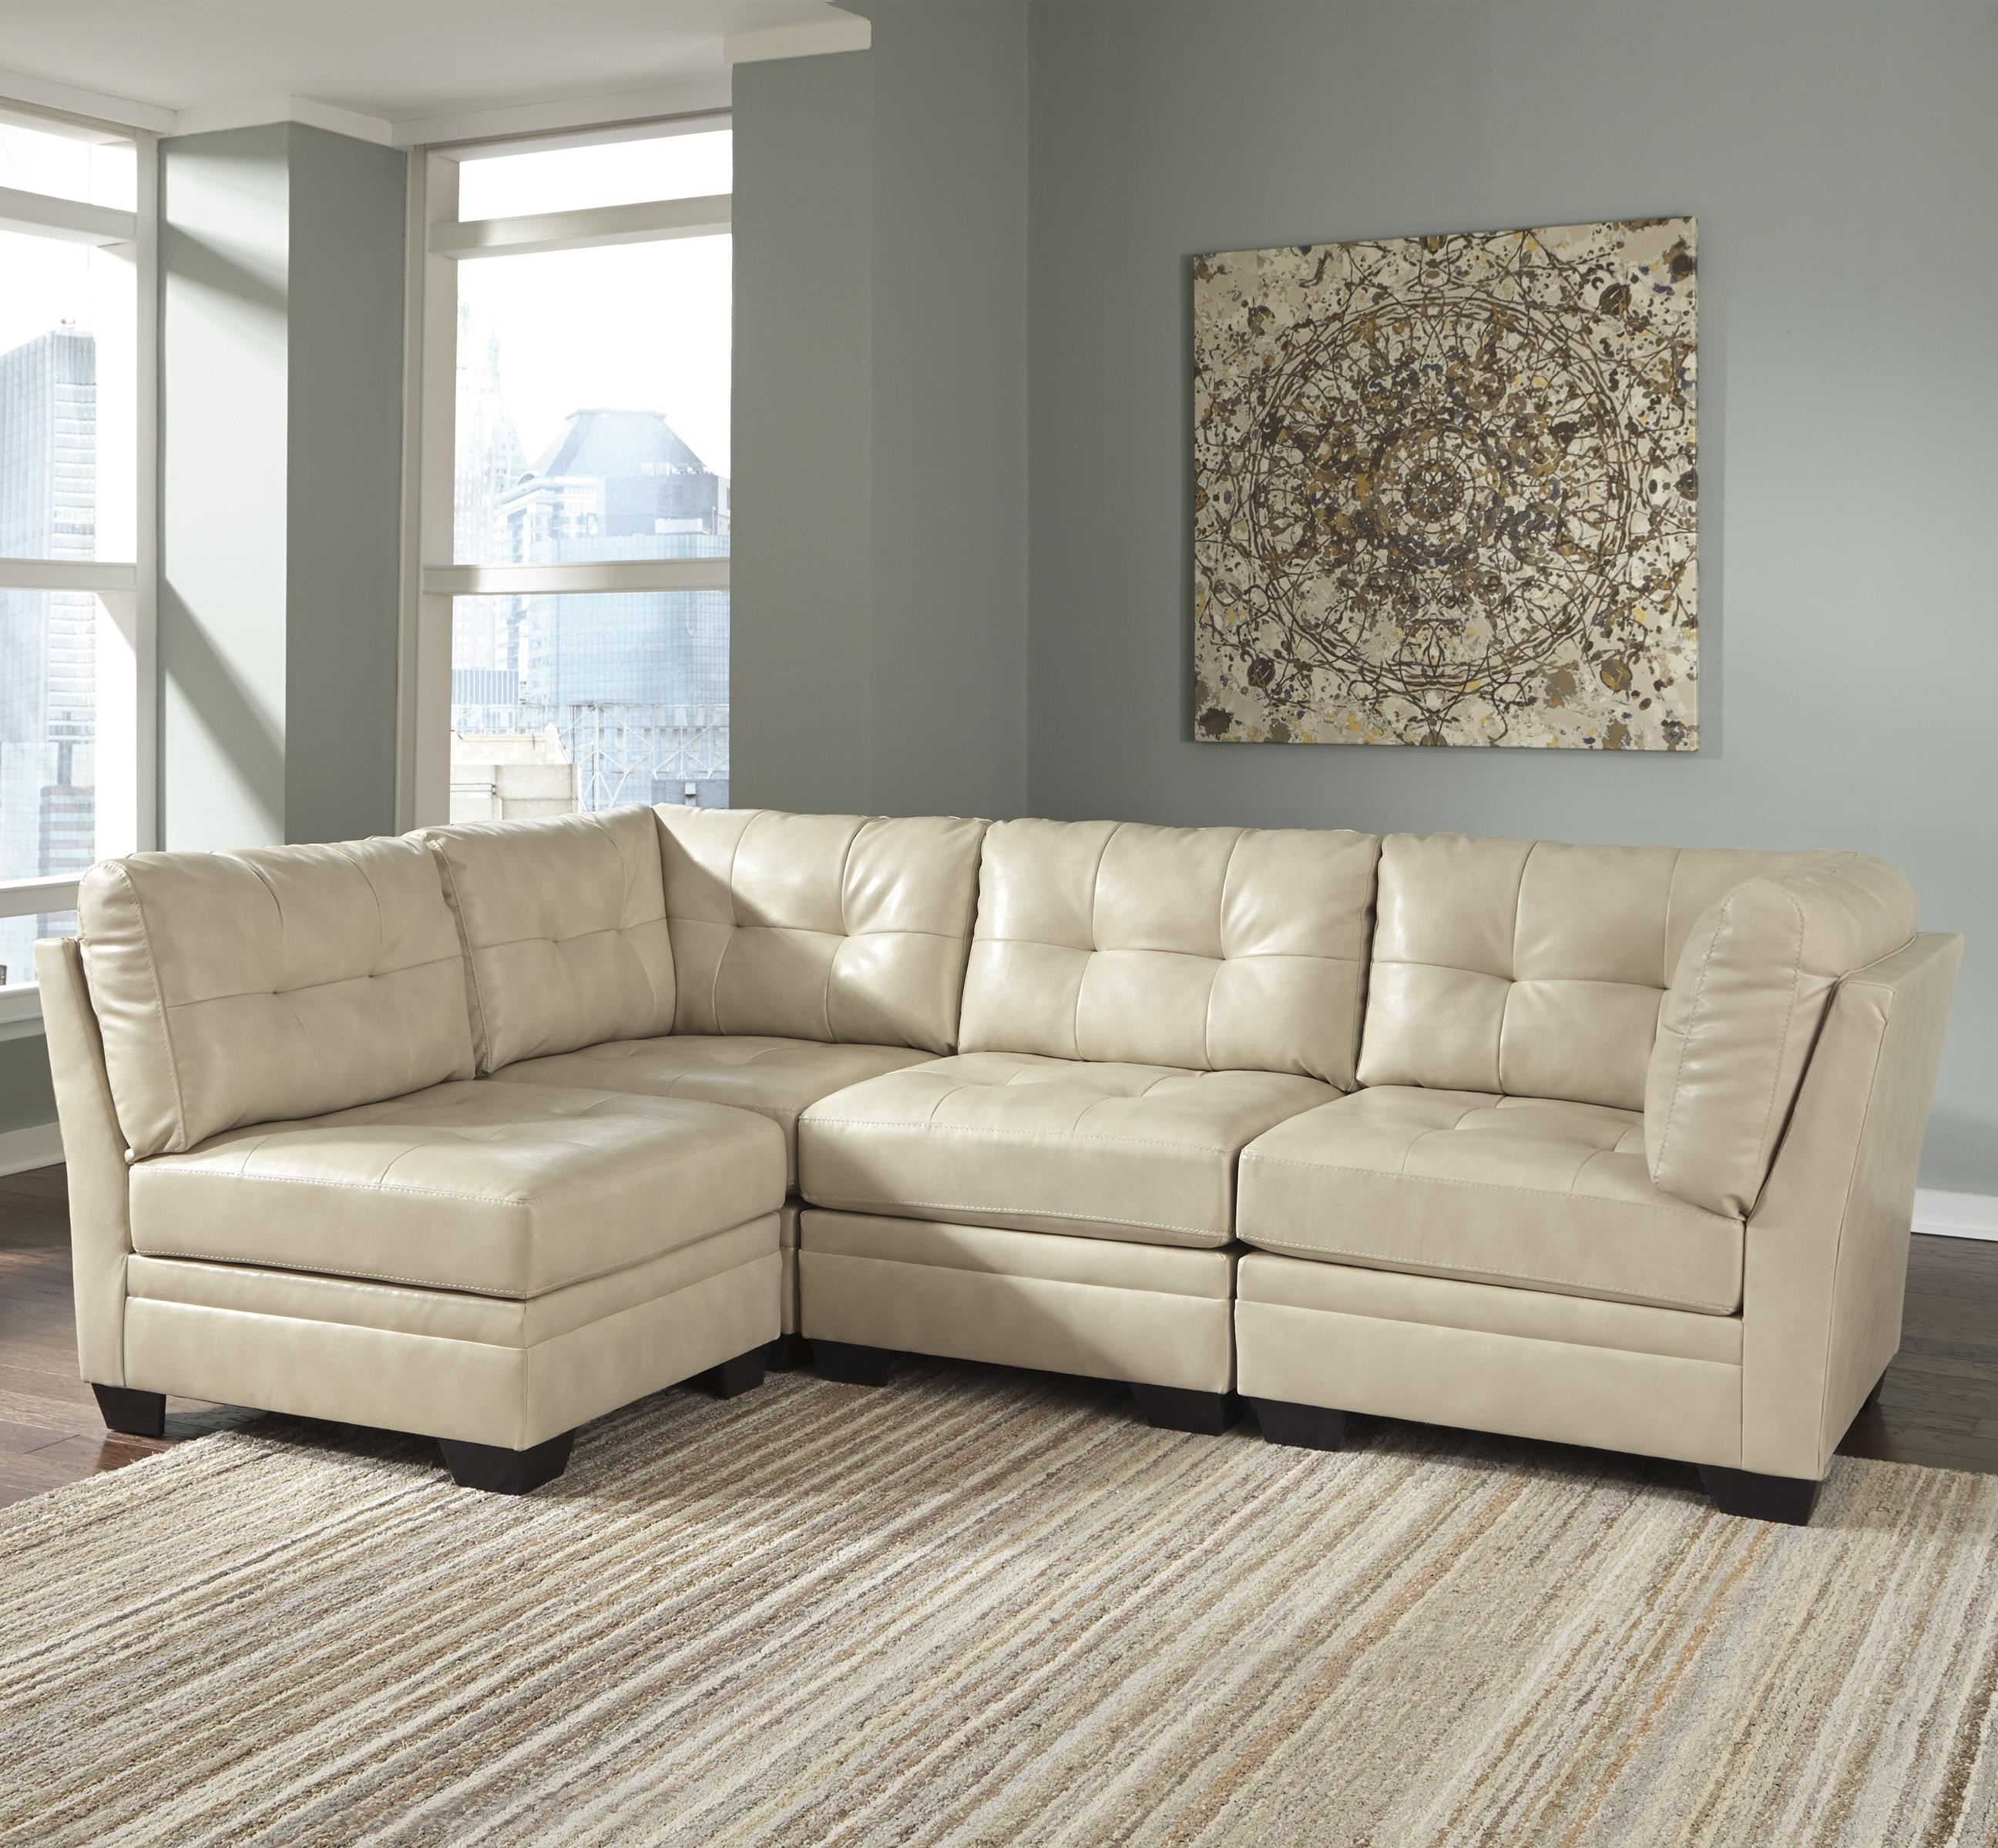 Ashley Furniture Paulie Living Room Set In Taupe ... Furniture Sleeper Sofa in addition Carpentry And Joinery. on nd name